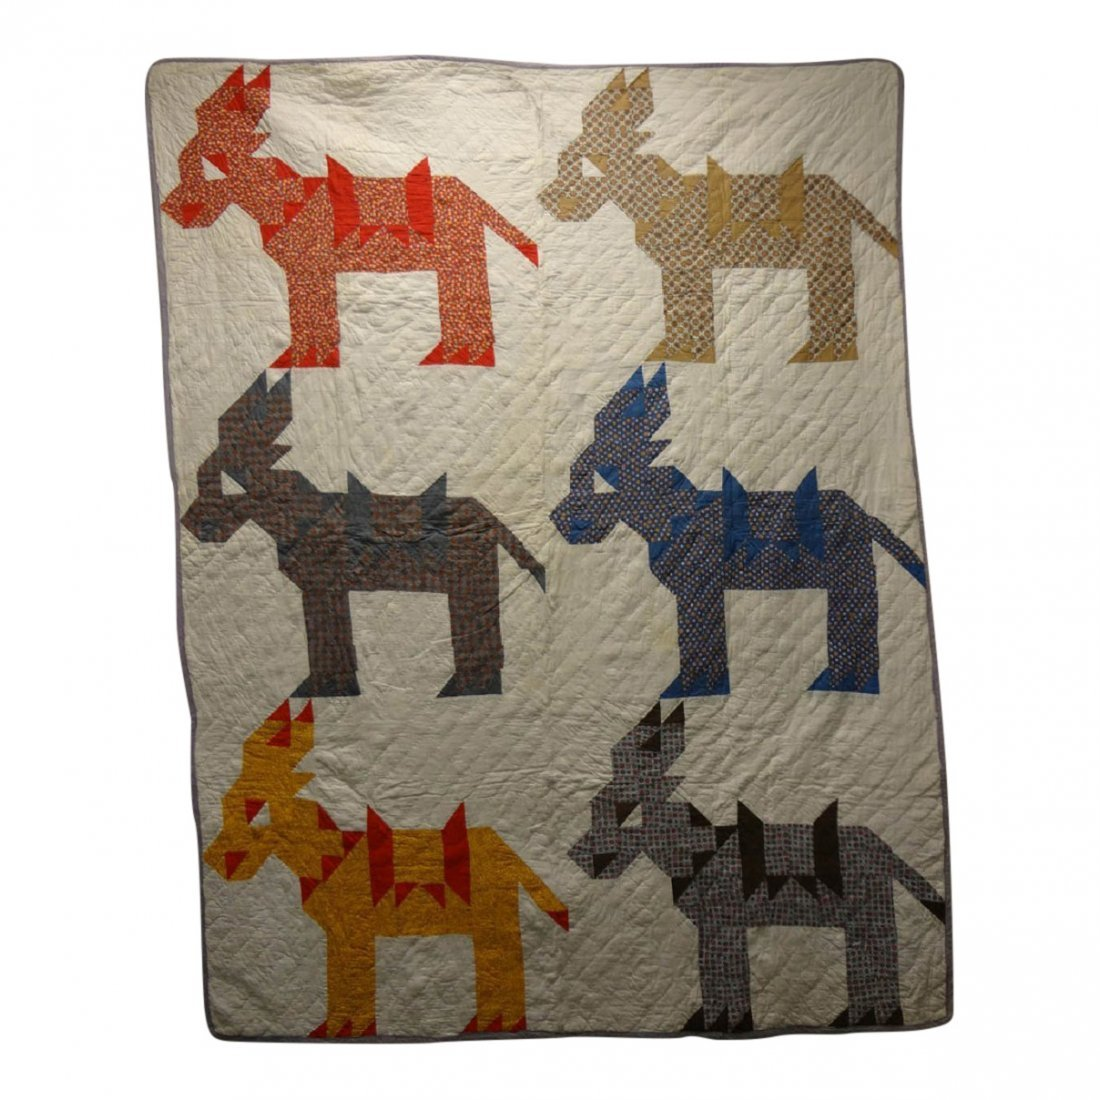 20th C Democratic Donkey Pieced Quilt